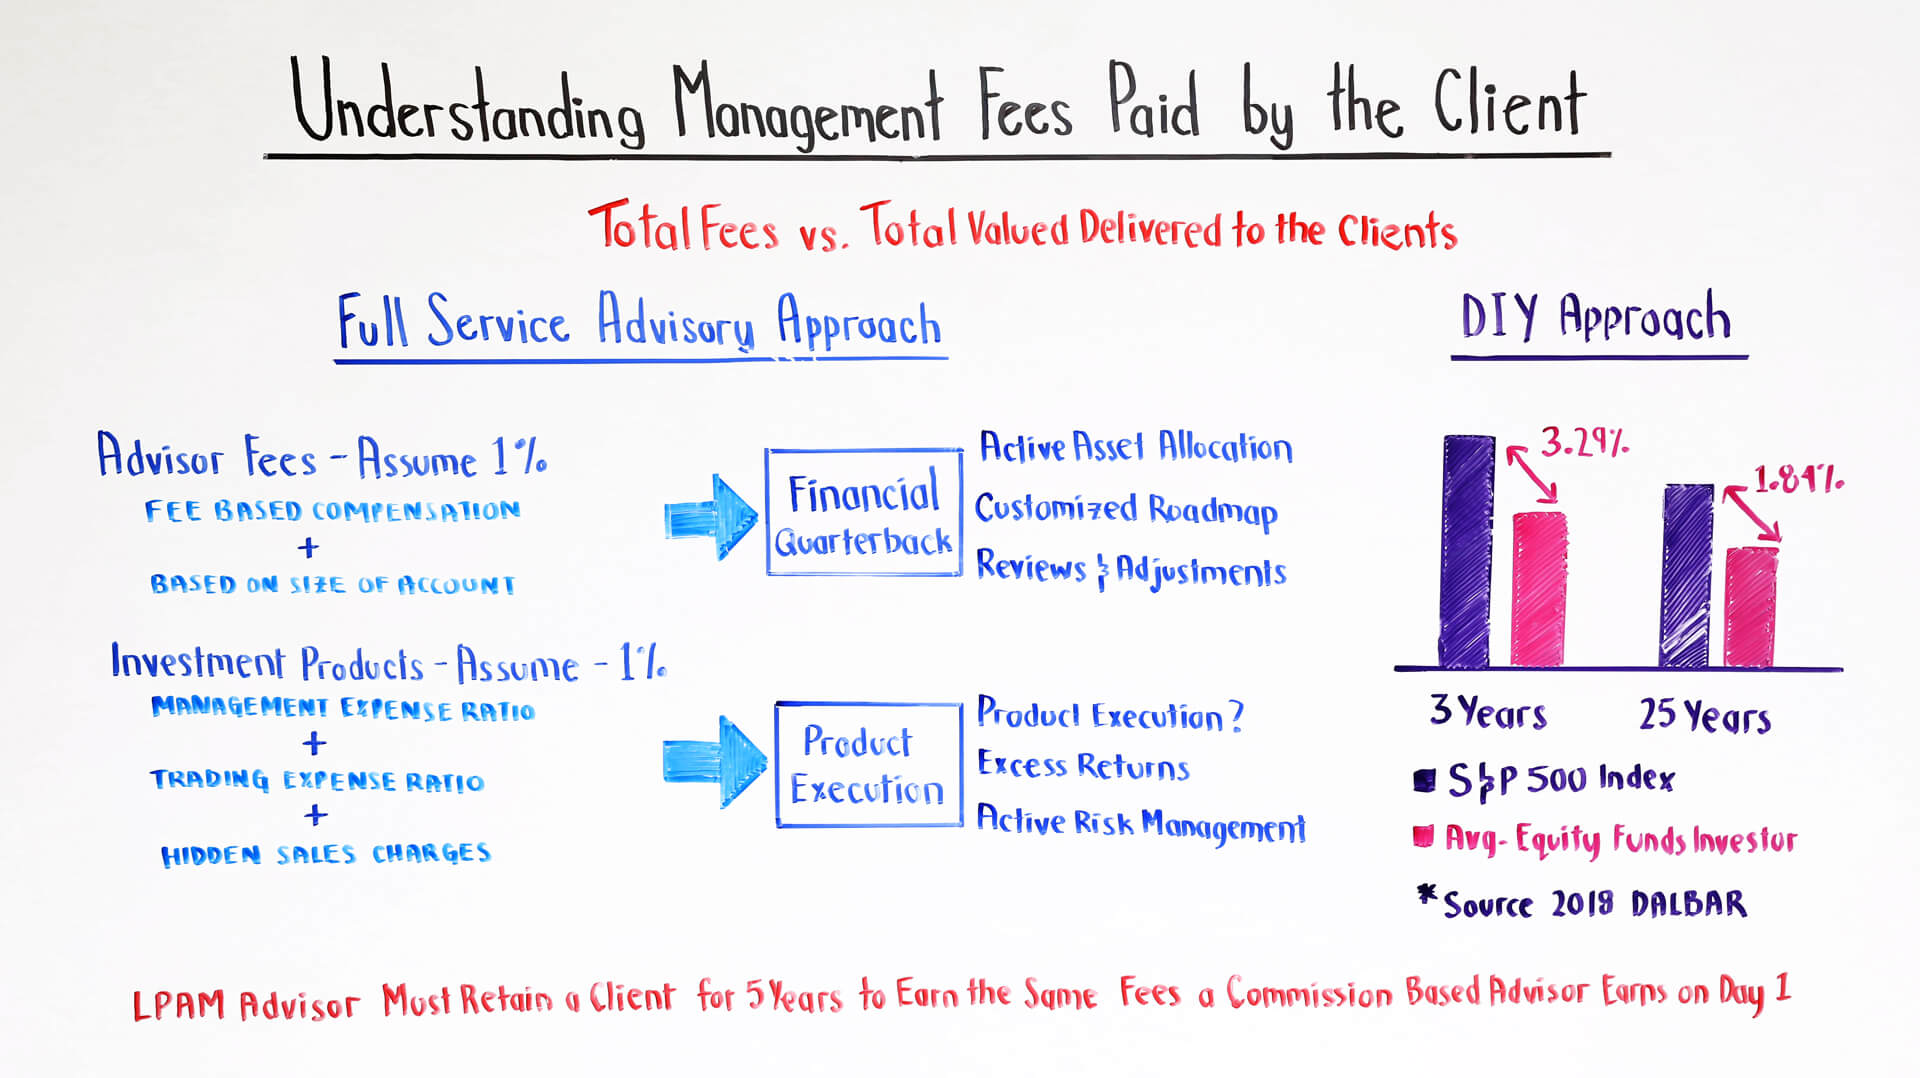 Understanding Management Fees Paid by the Client